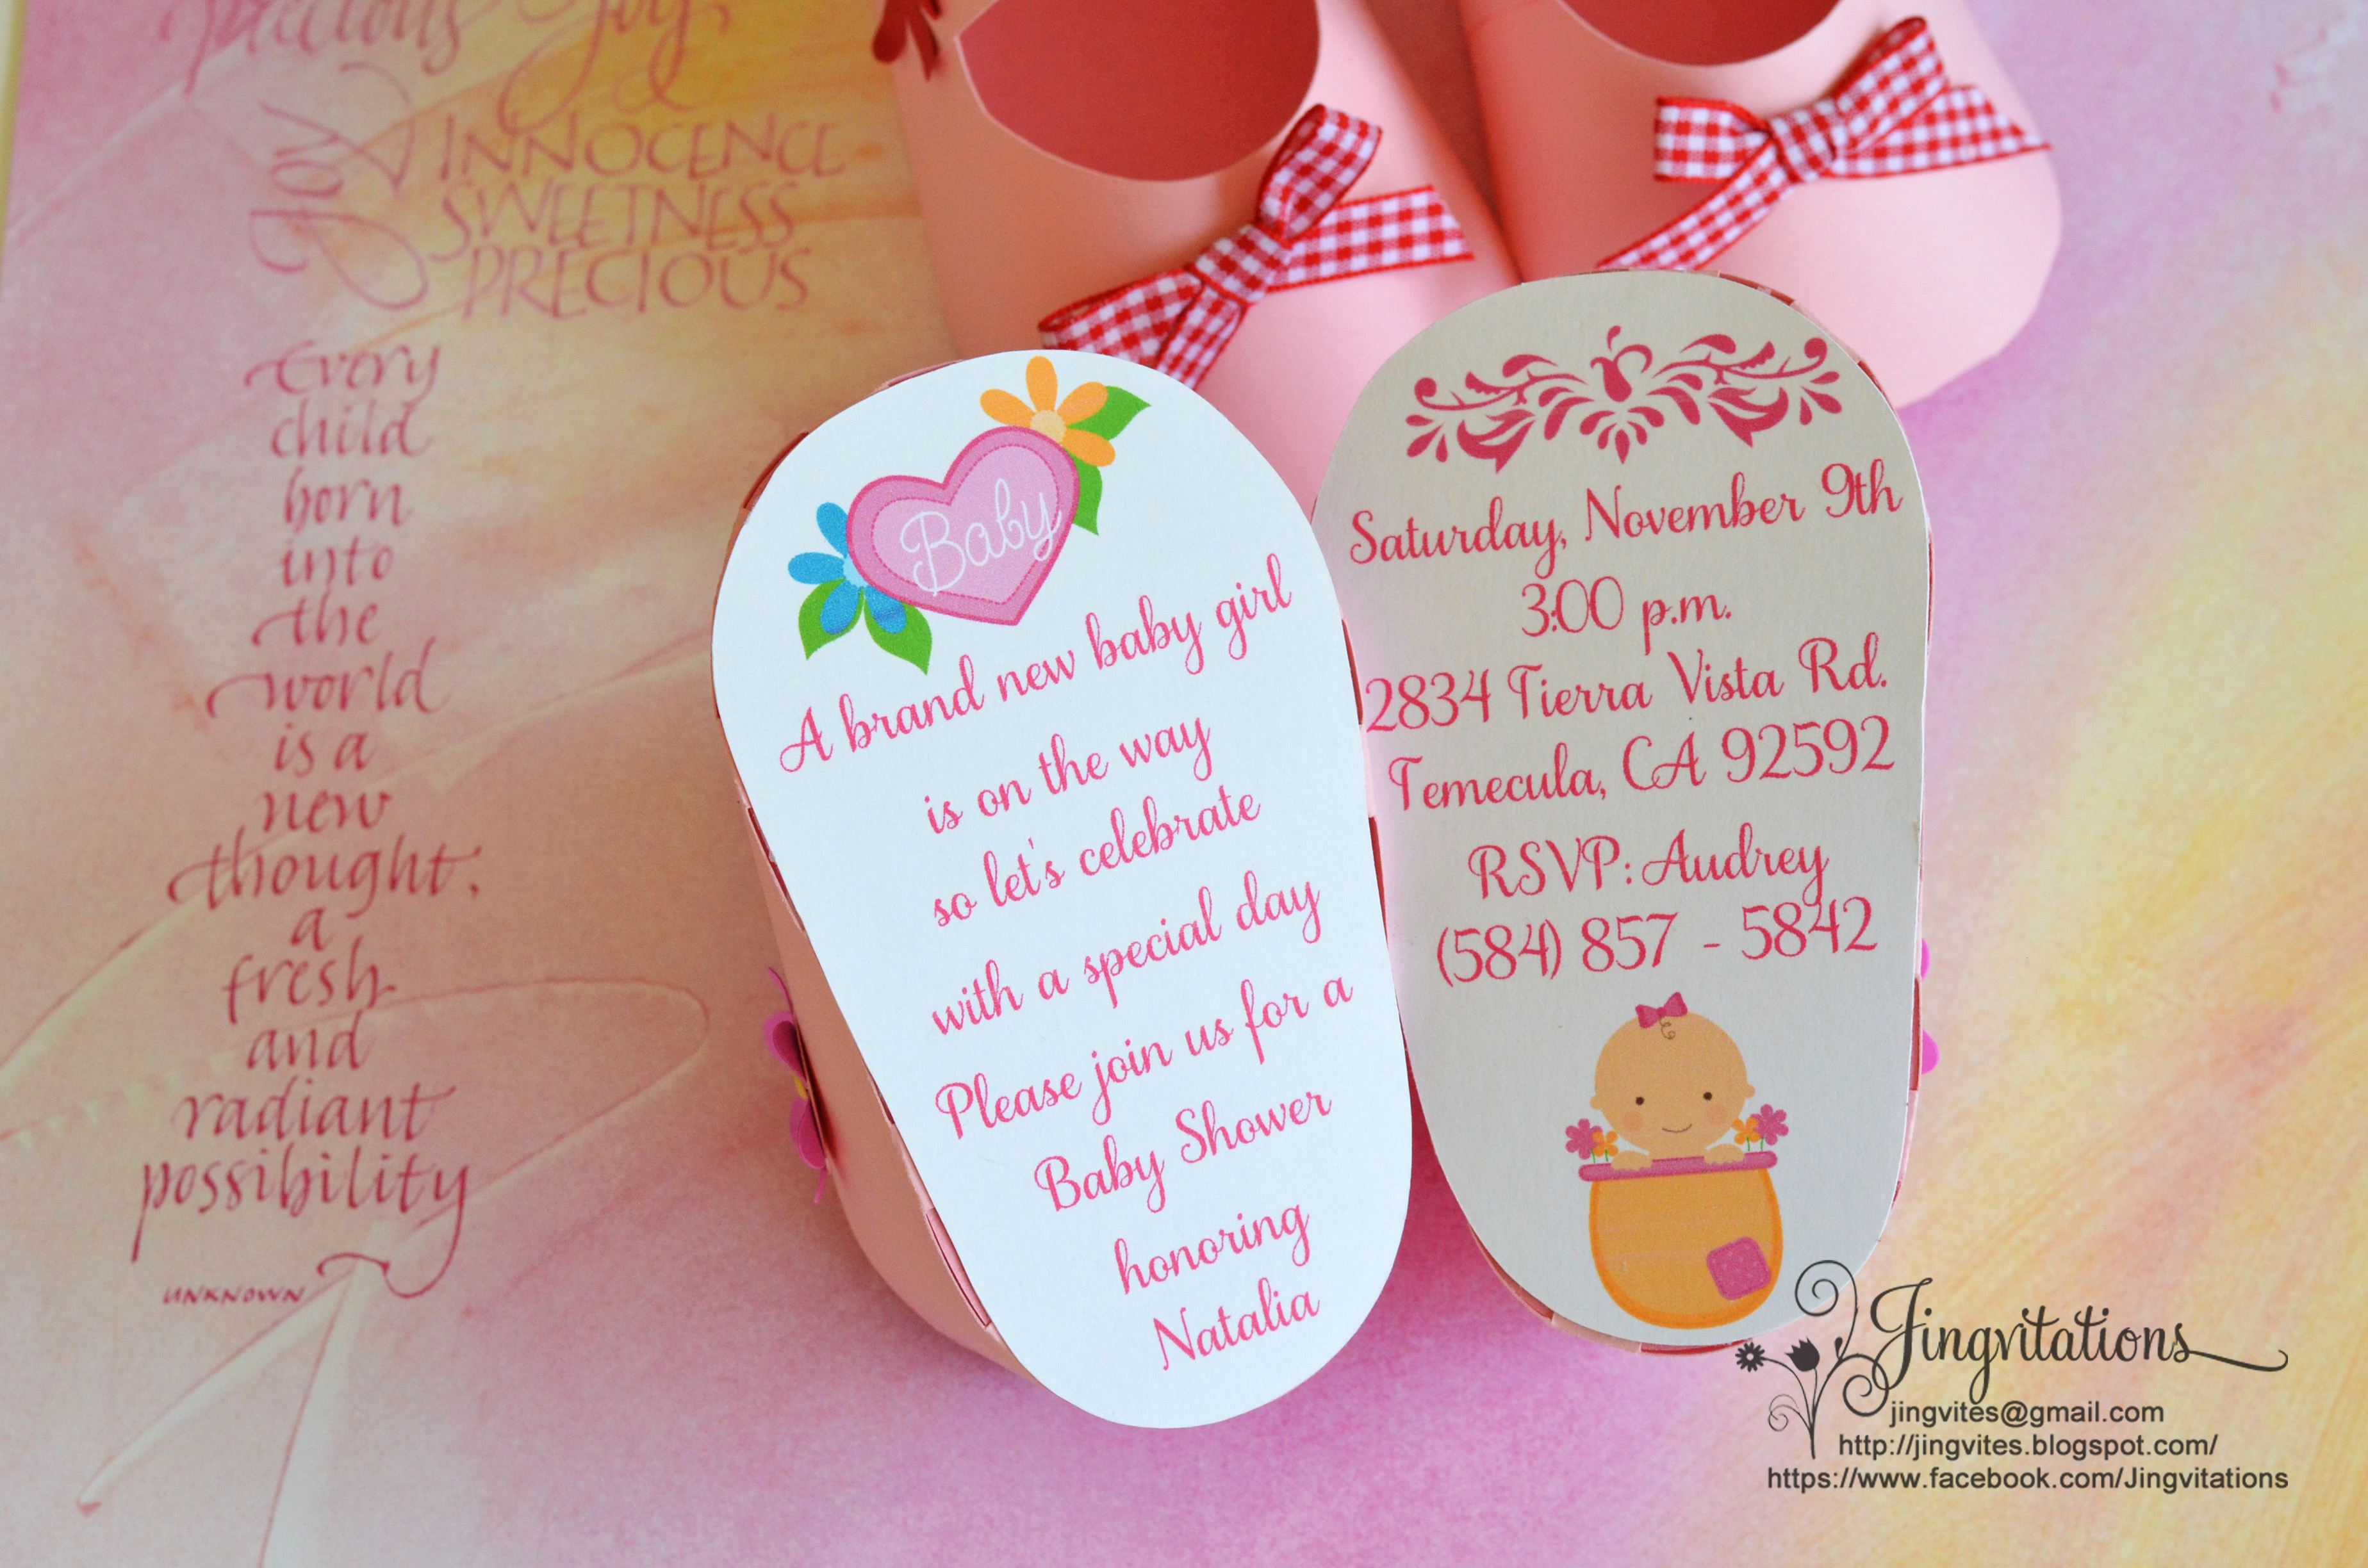 Baby Shower Invitation Images Best Of 301 Moved Permanently